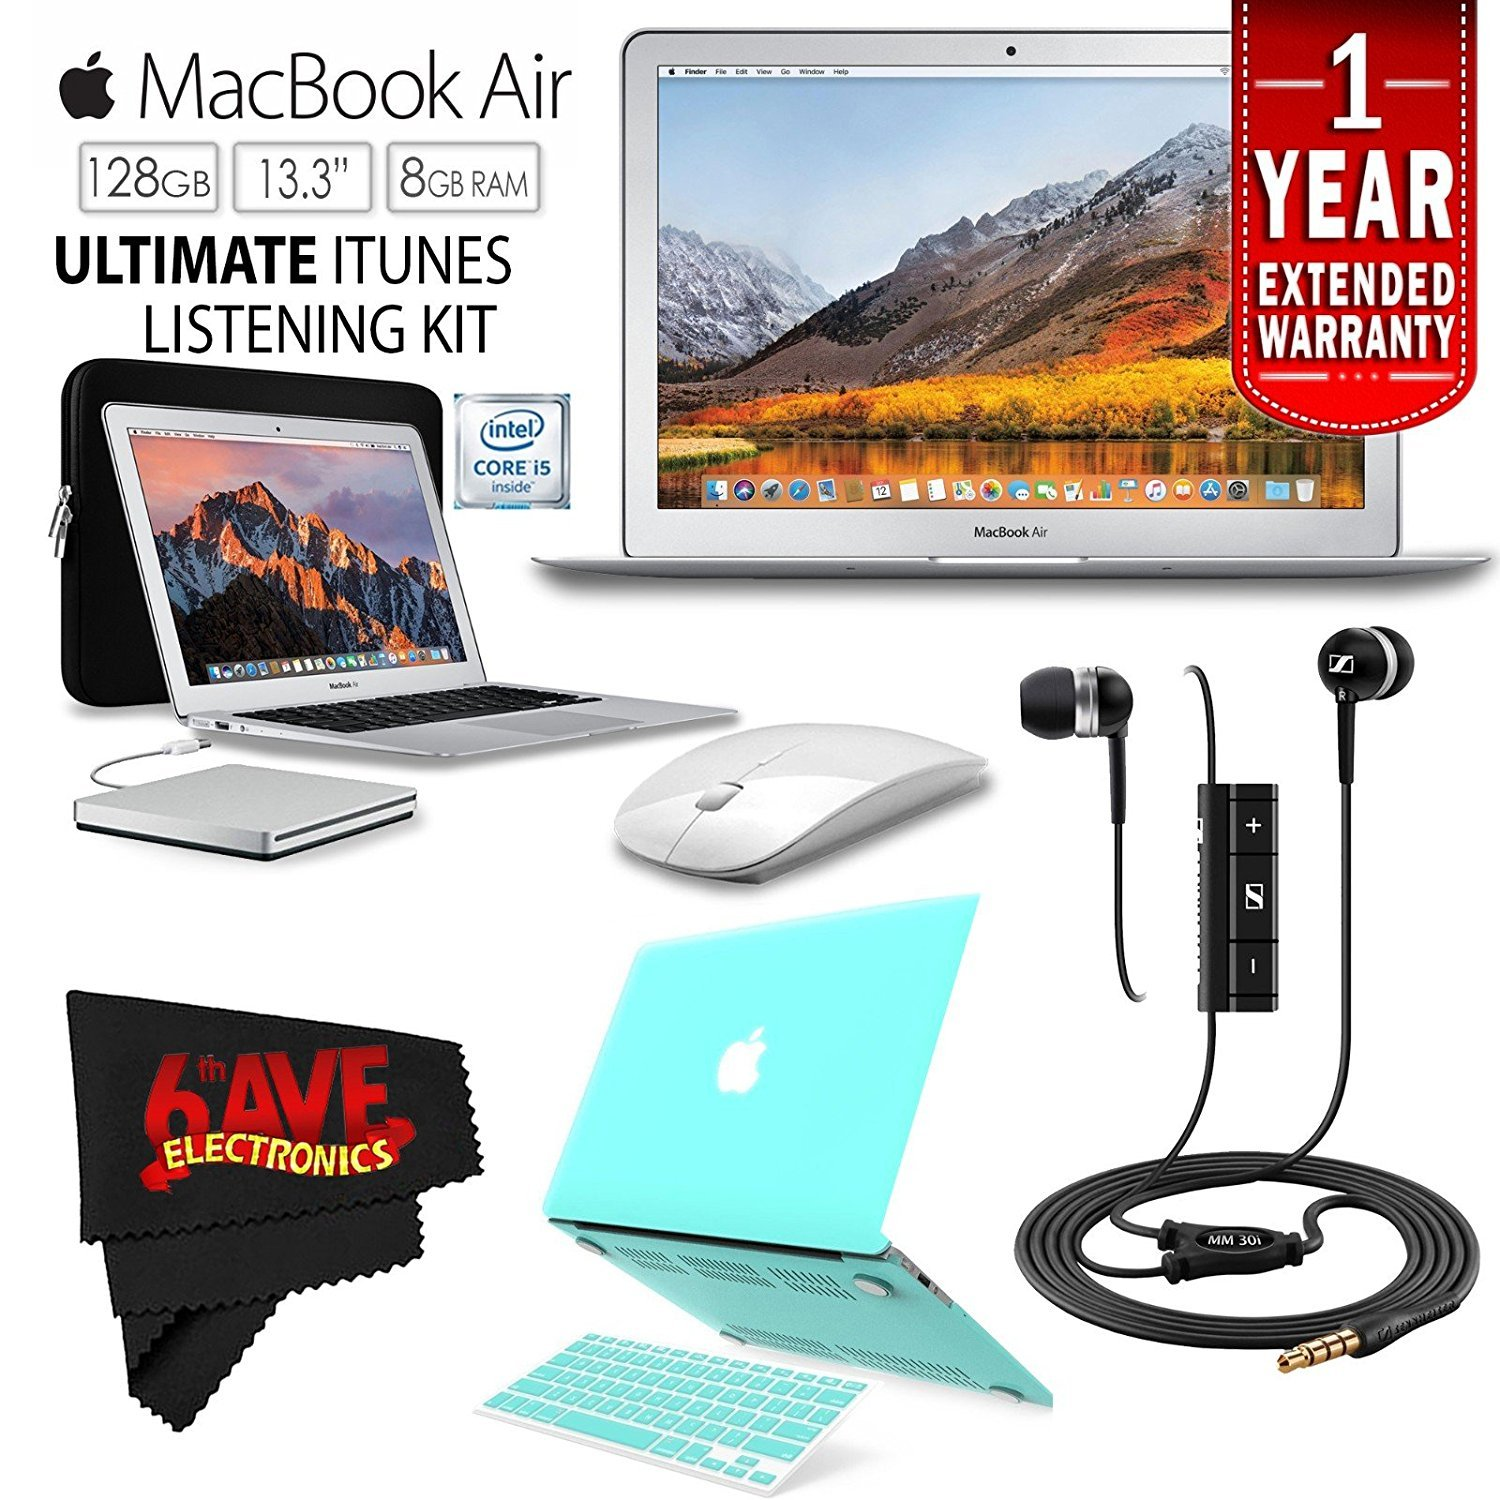 "6Ave Apple 13.3"" MacBook Air 128GB SSD #MQD32LL/A + iBenzer Basic Soft-Touch Series Plastic Hard Case & Keyboard Cover for Apple Macbook Air 13-inch 13"" (Turquoise) + Apple USB SuperDrive Bundle"